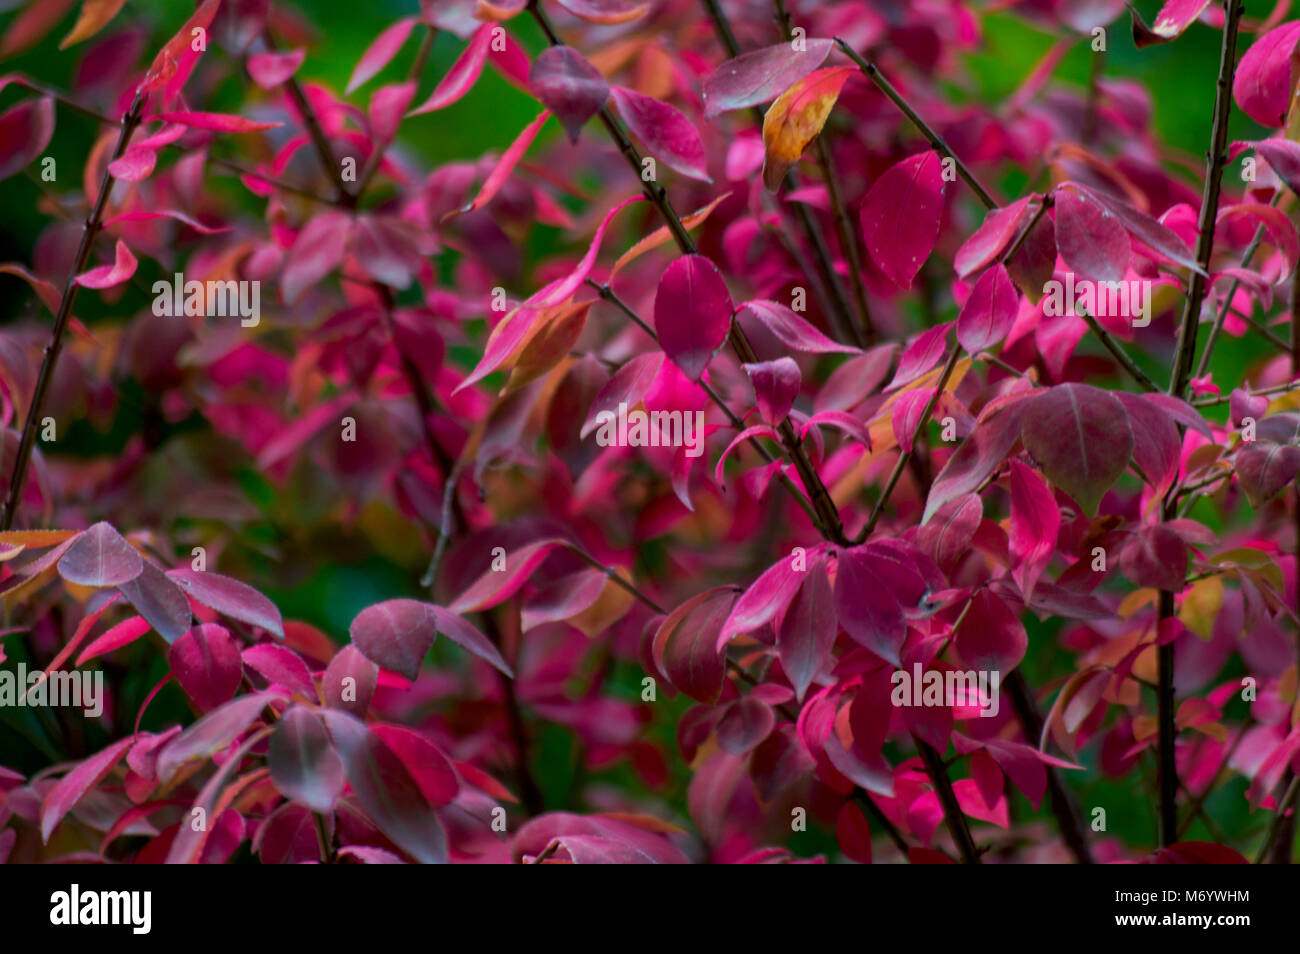 close up of plant with pink leaves - Stock Image